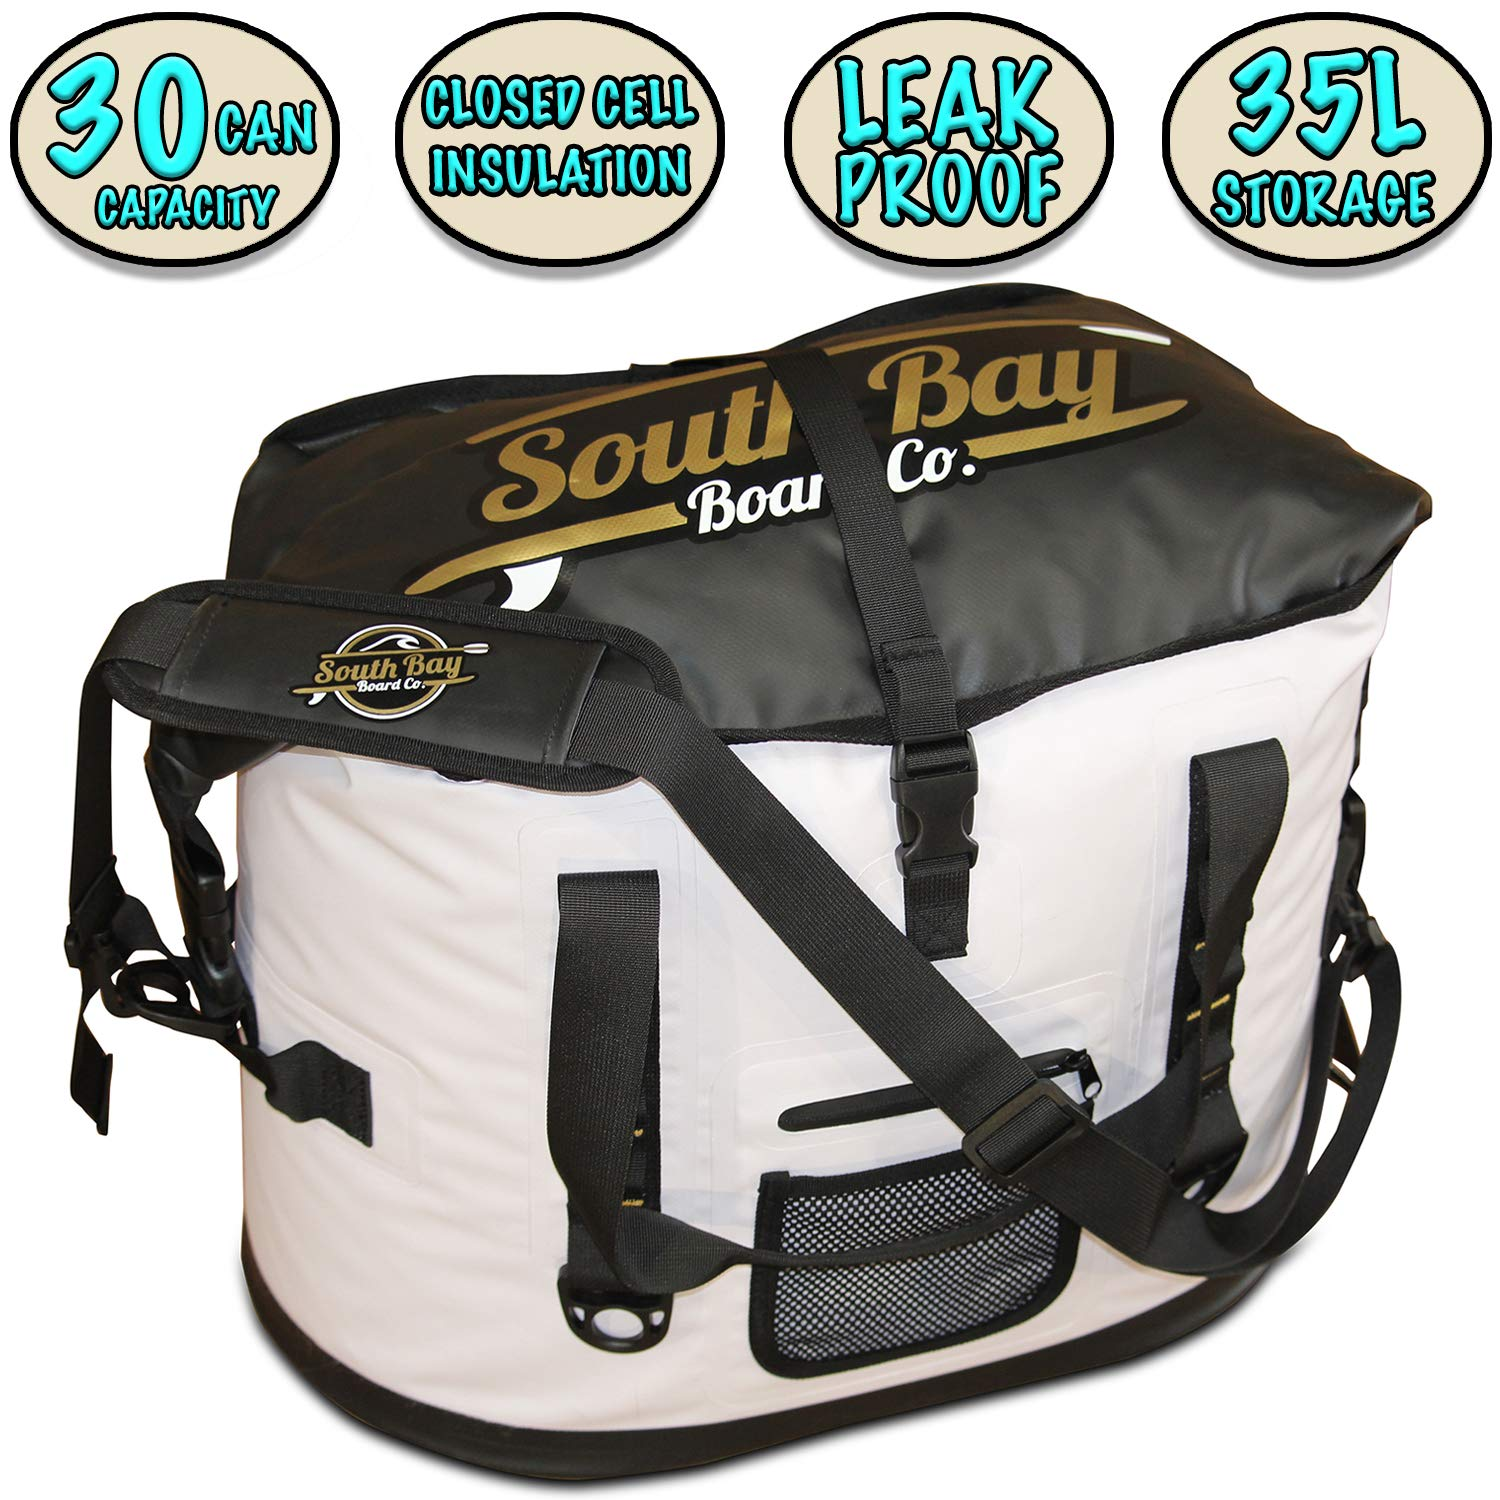 SBBC – XL Insulated Beach Cooler – XL Leak Proof Soft Cooler – 30 Can Capacity – Thick Insulation, Dry Sac Large Cooler Capacity with Extra Durable Shell 35L White